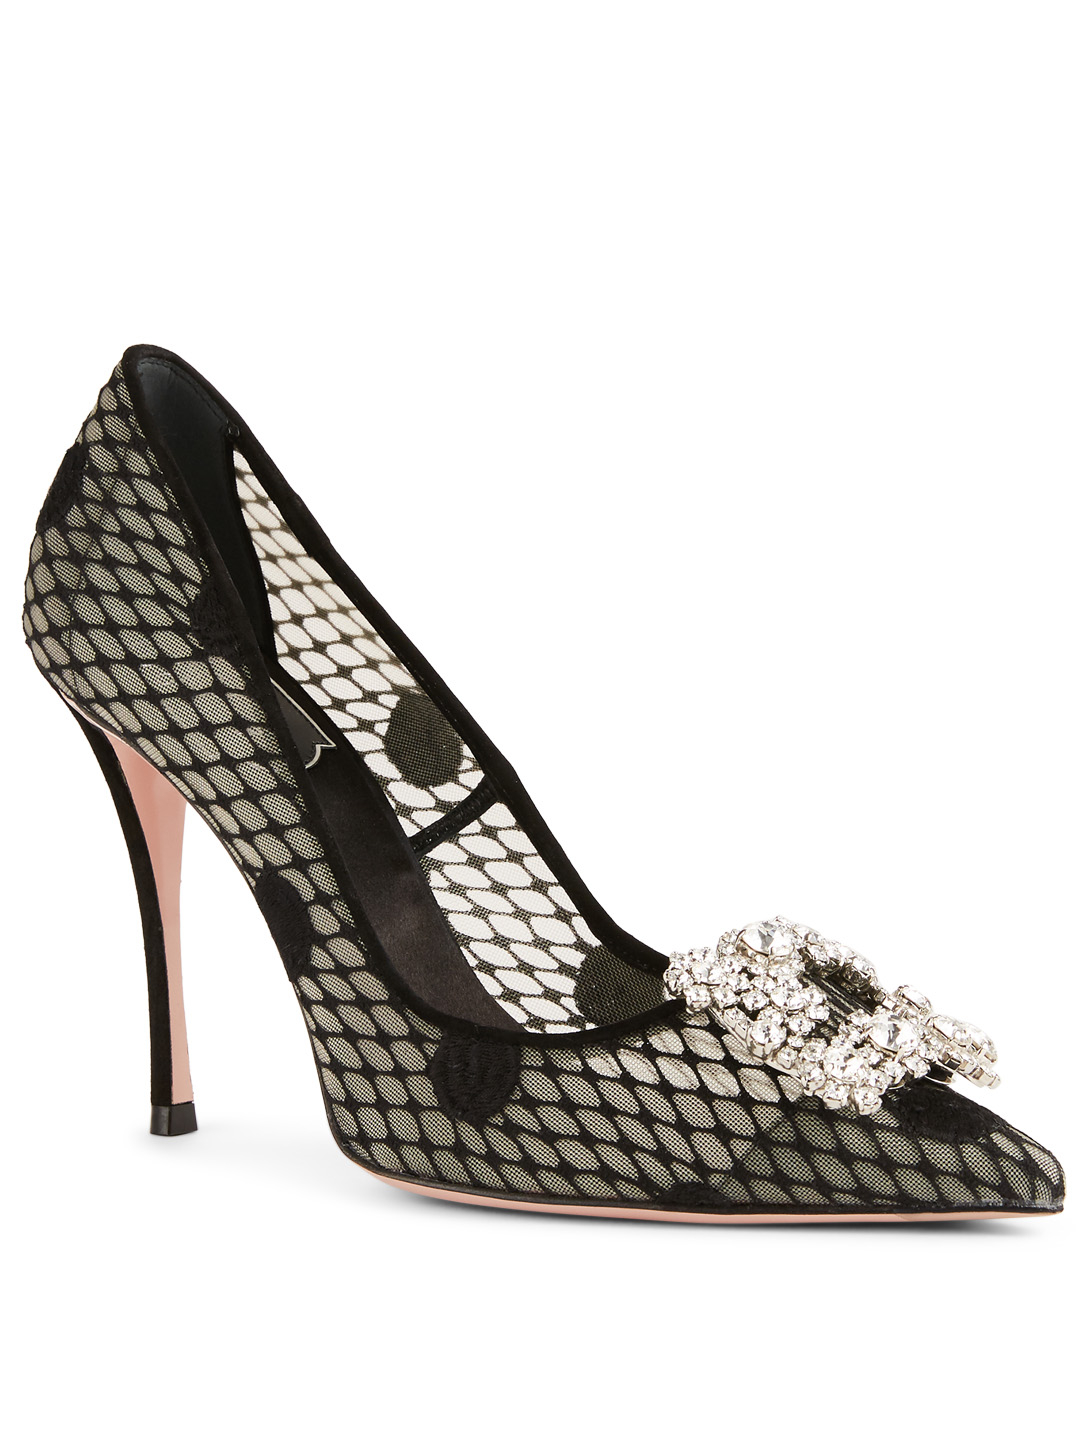 ROGER VIVIER Flower Strass Polka Dot Mesh Pumps Women's Black